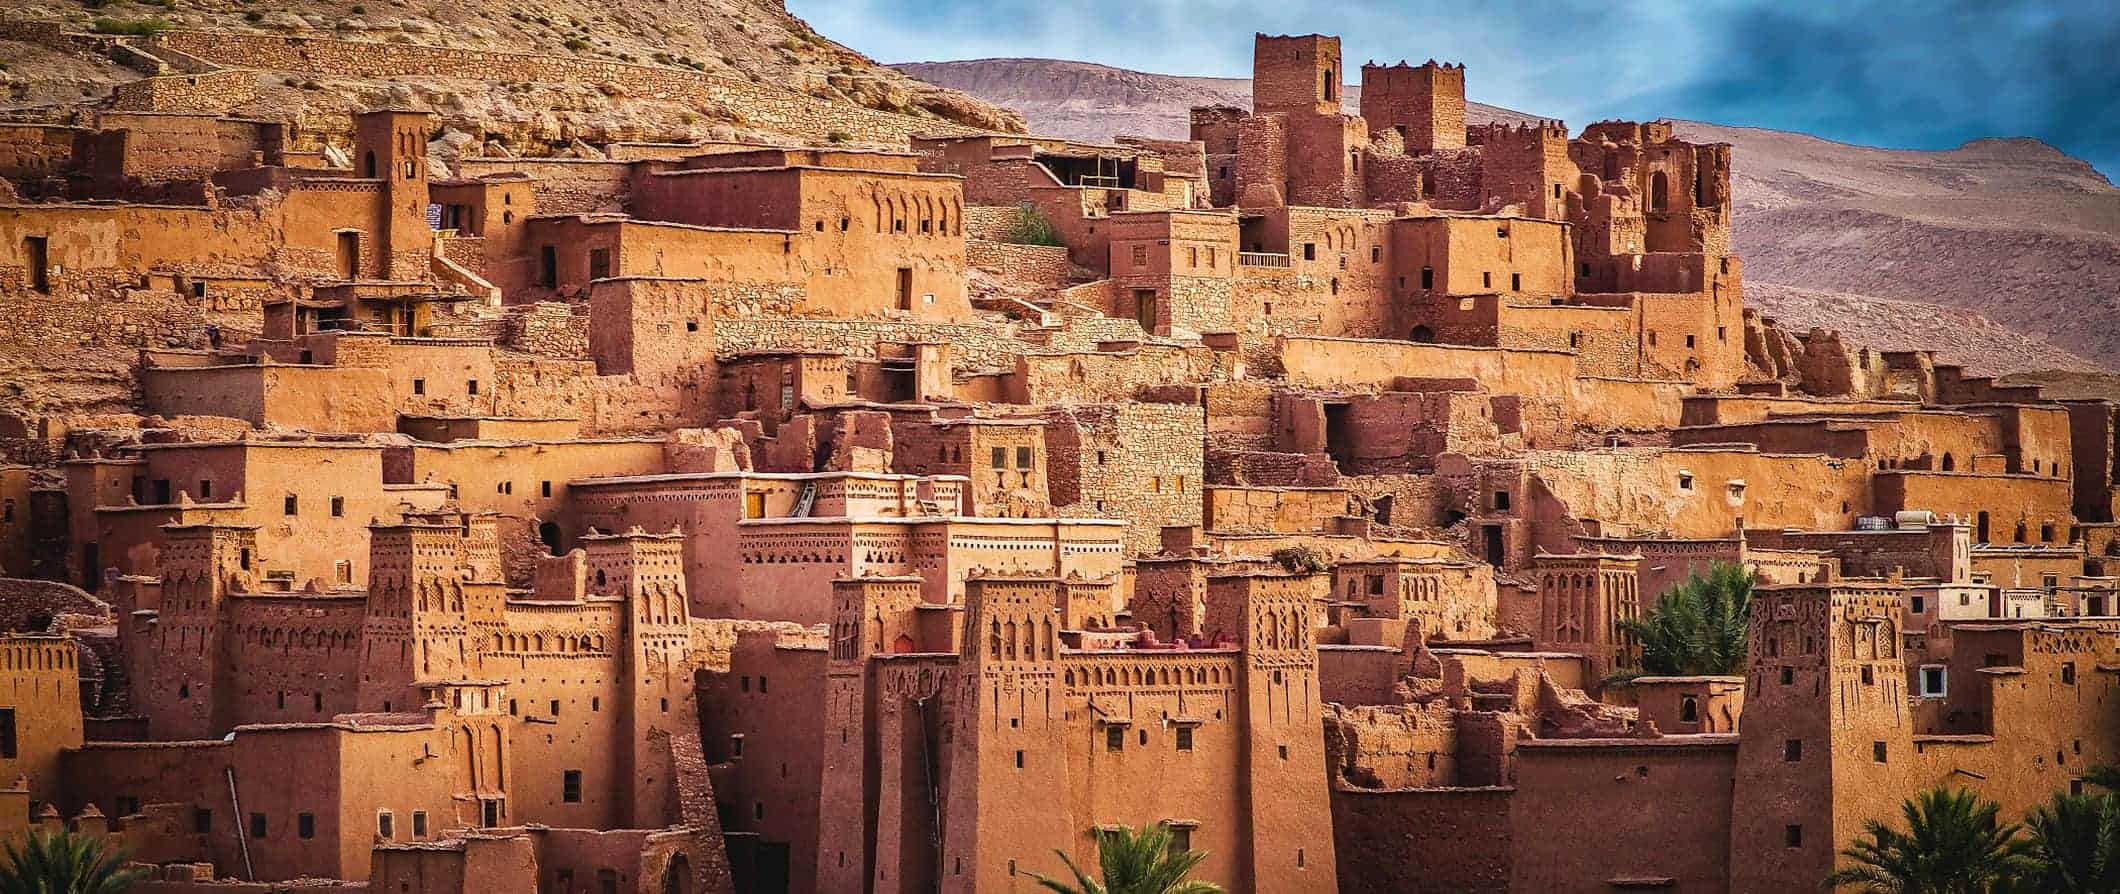 buildings in Morocco